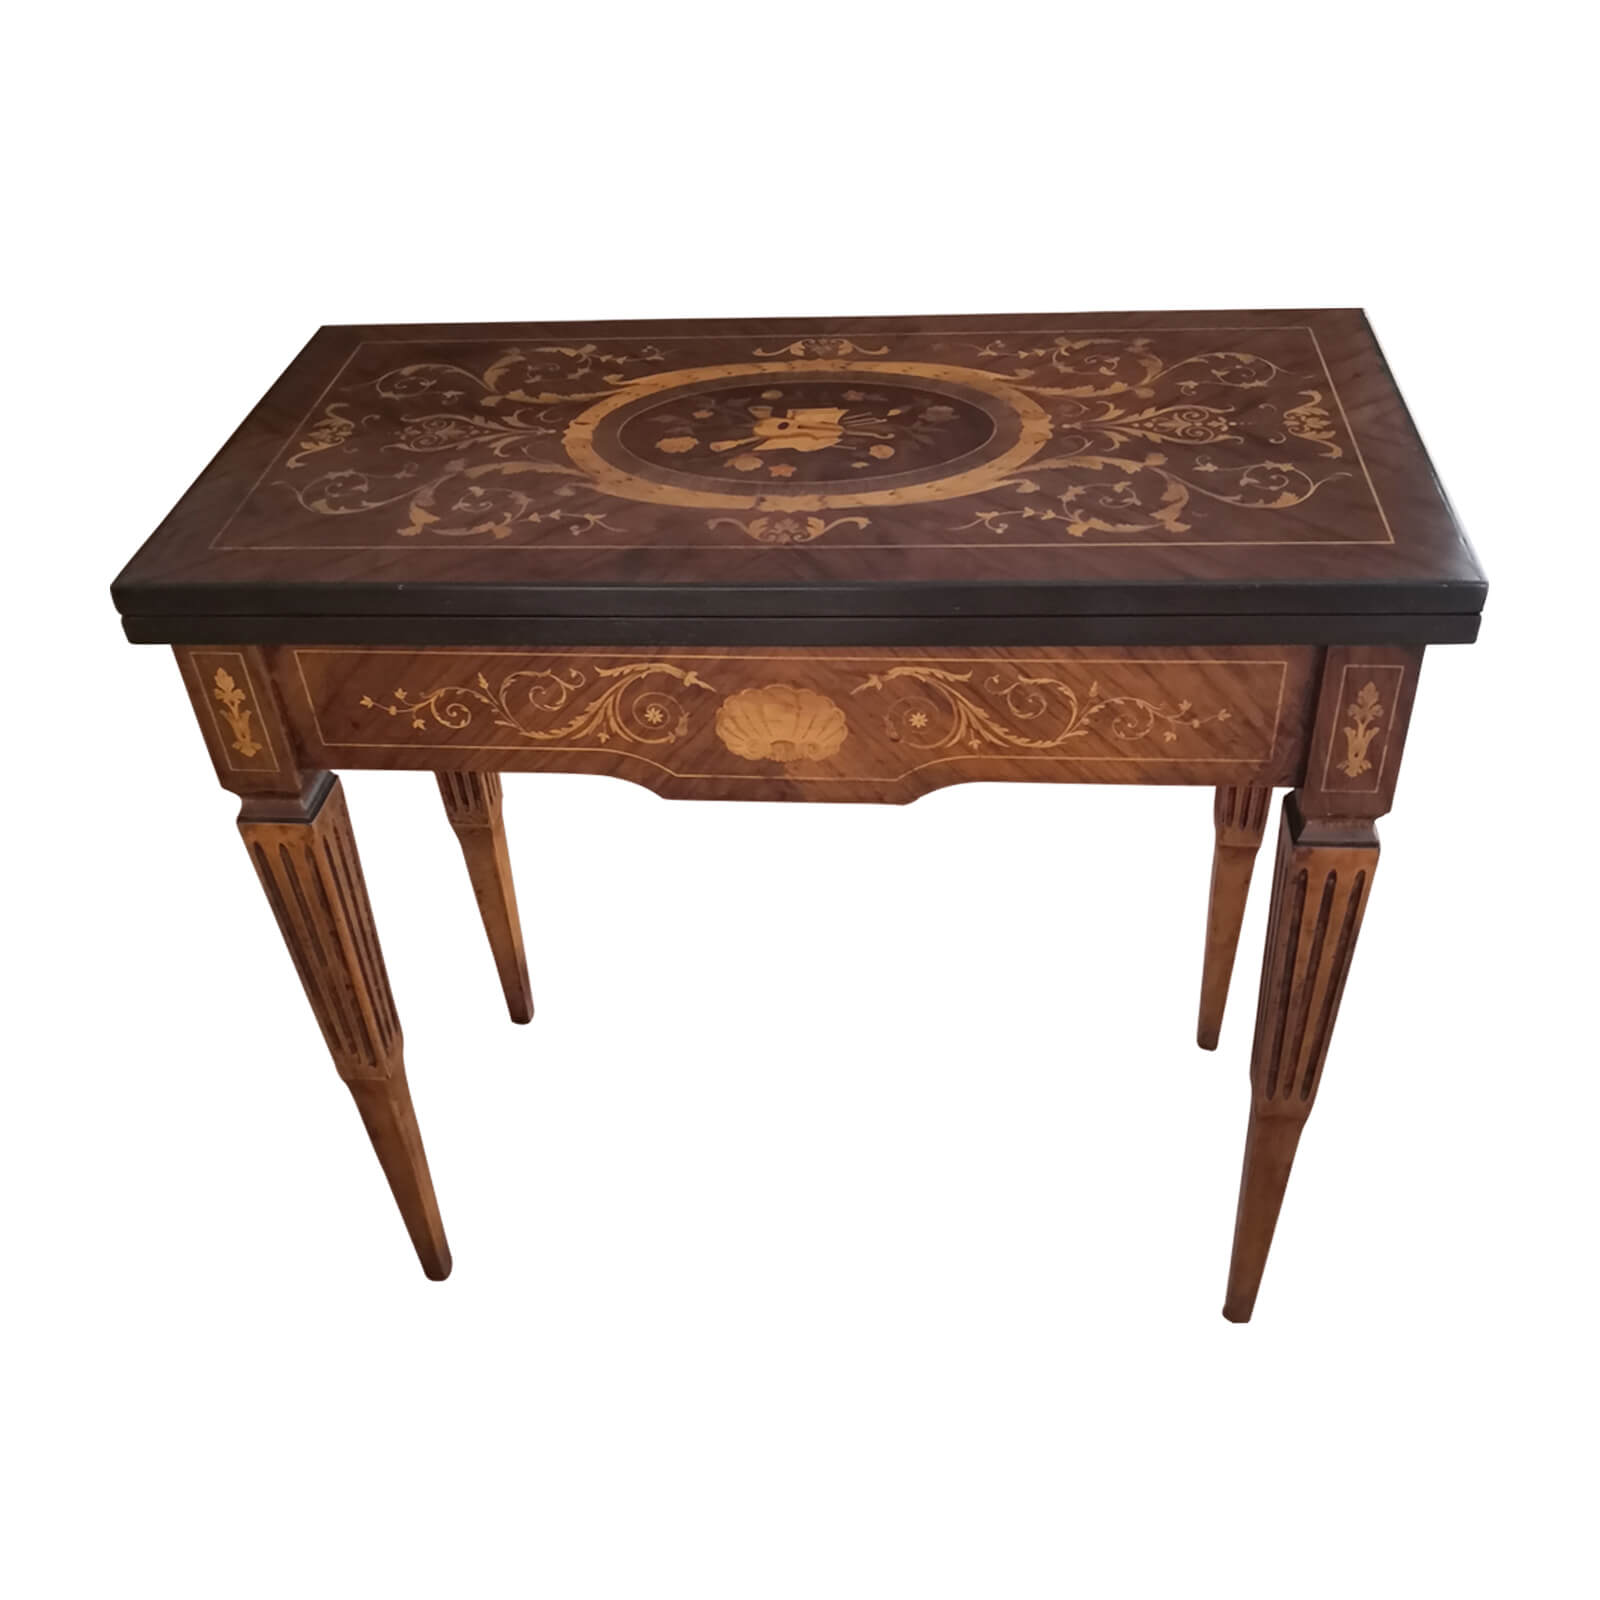 Marquetry games table